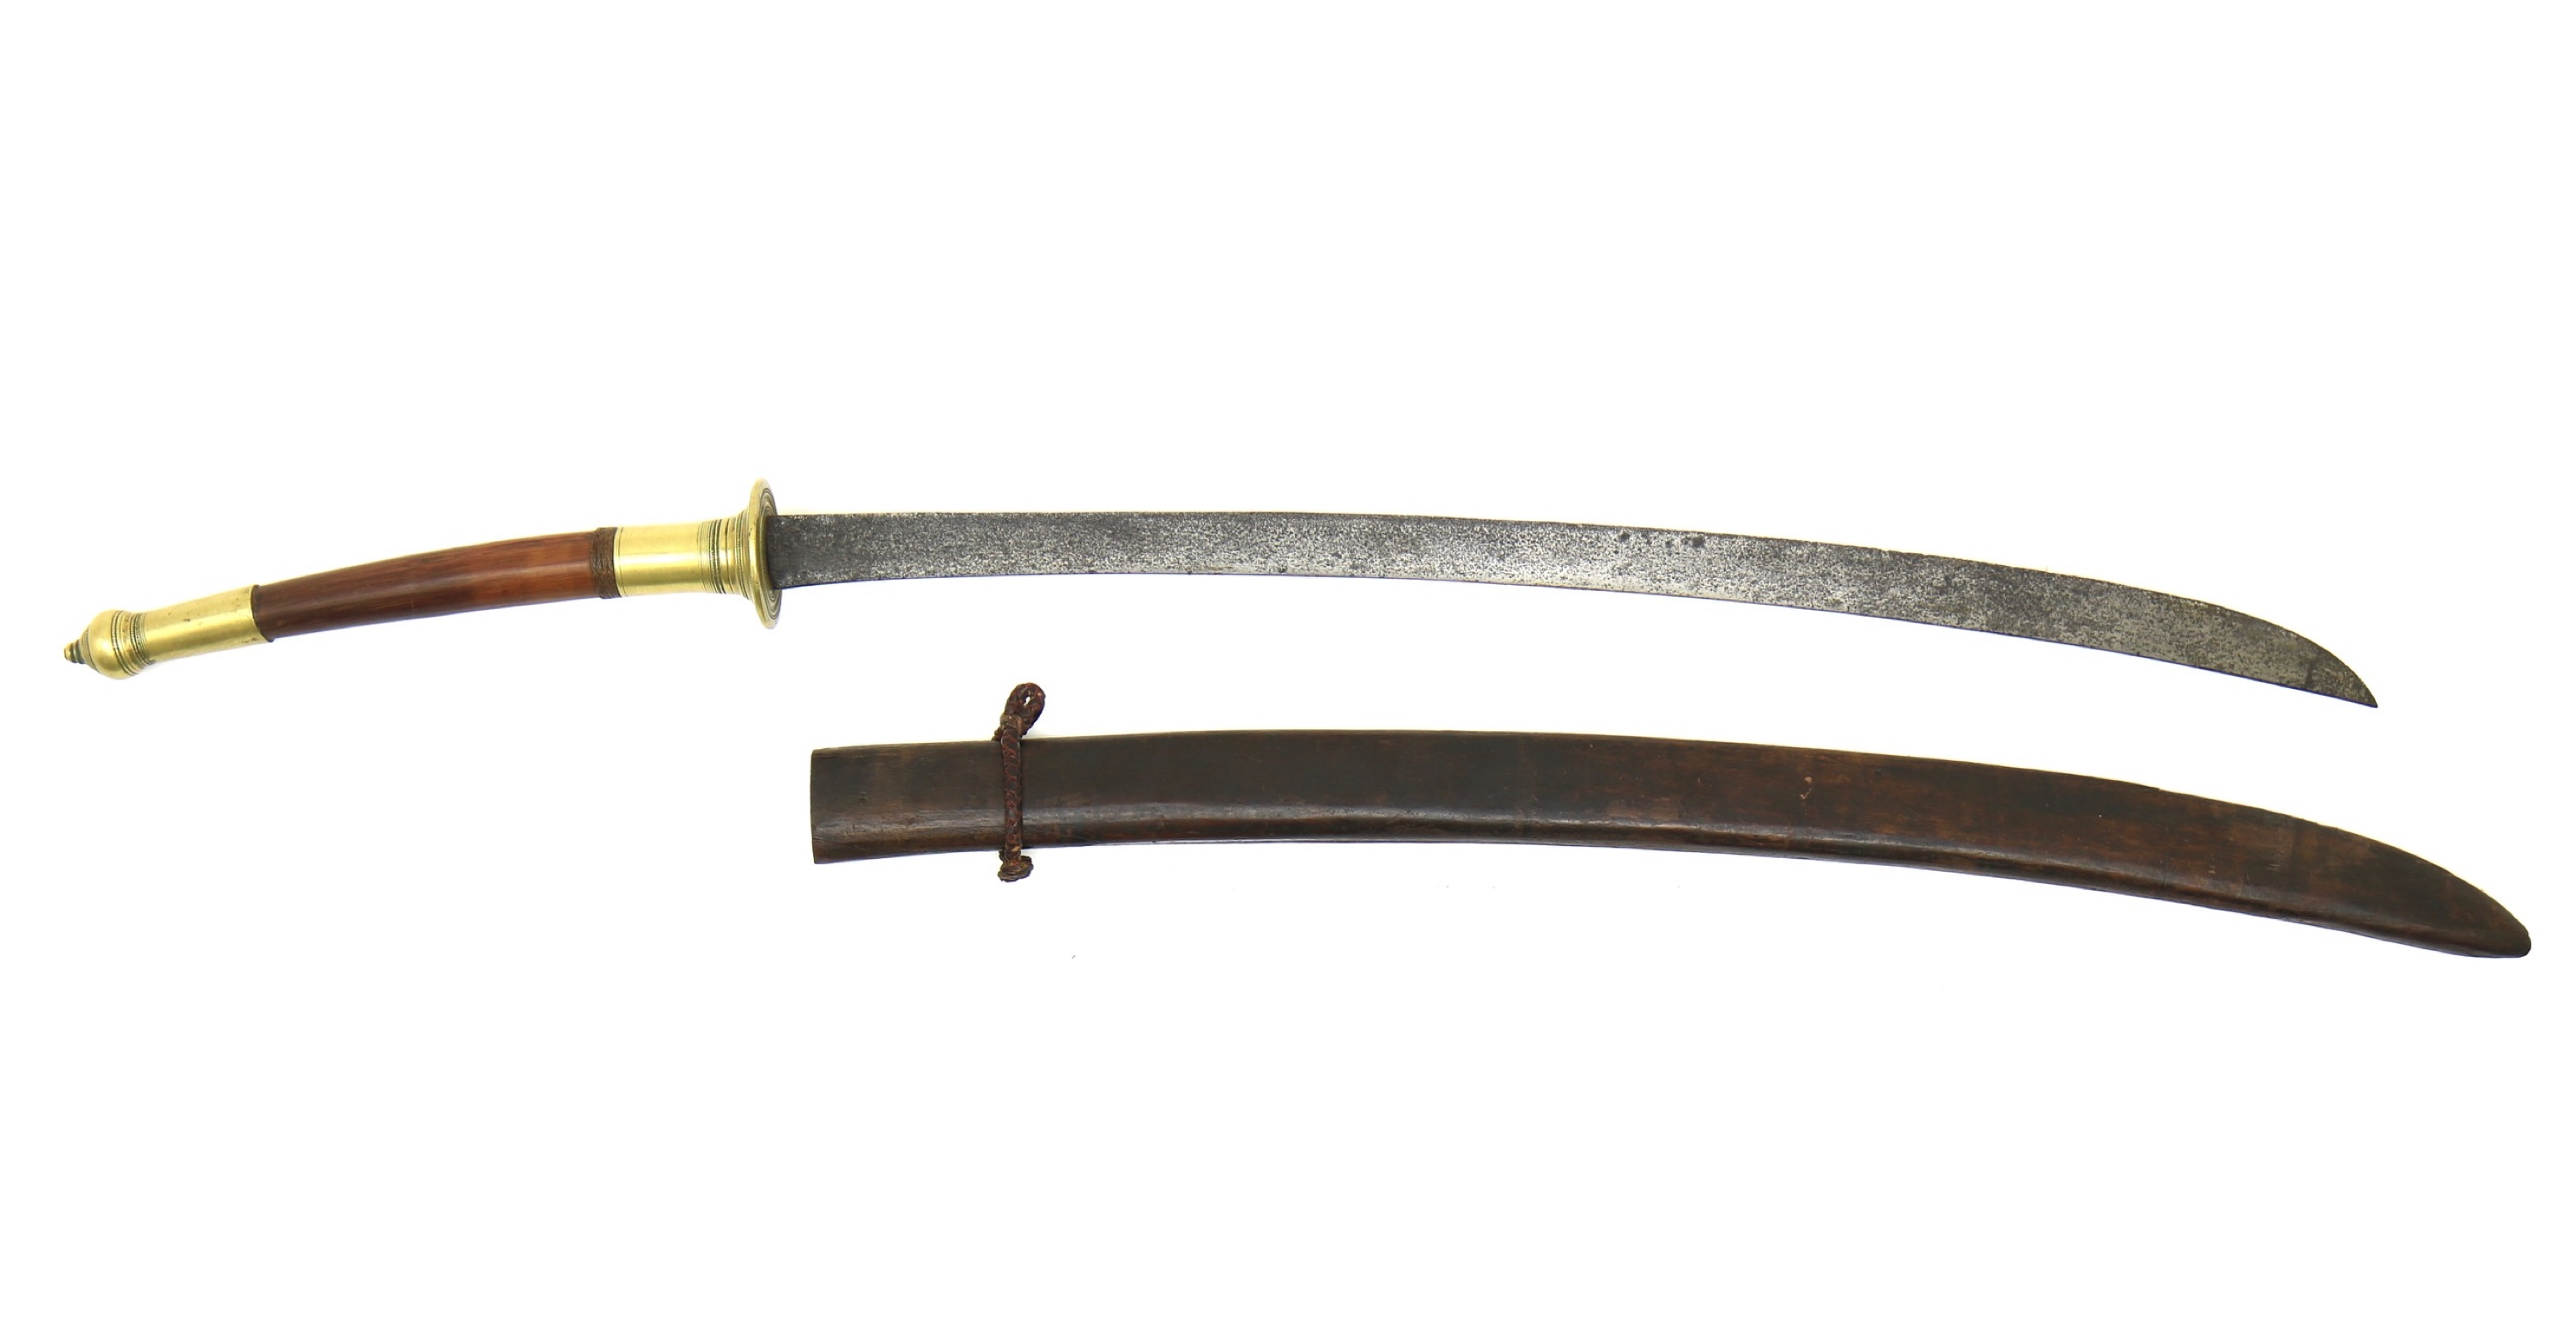 Brass mounted Thai daap